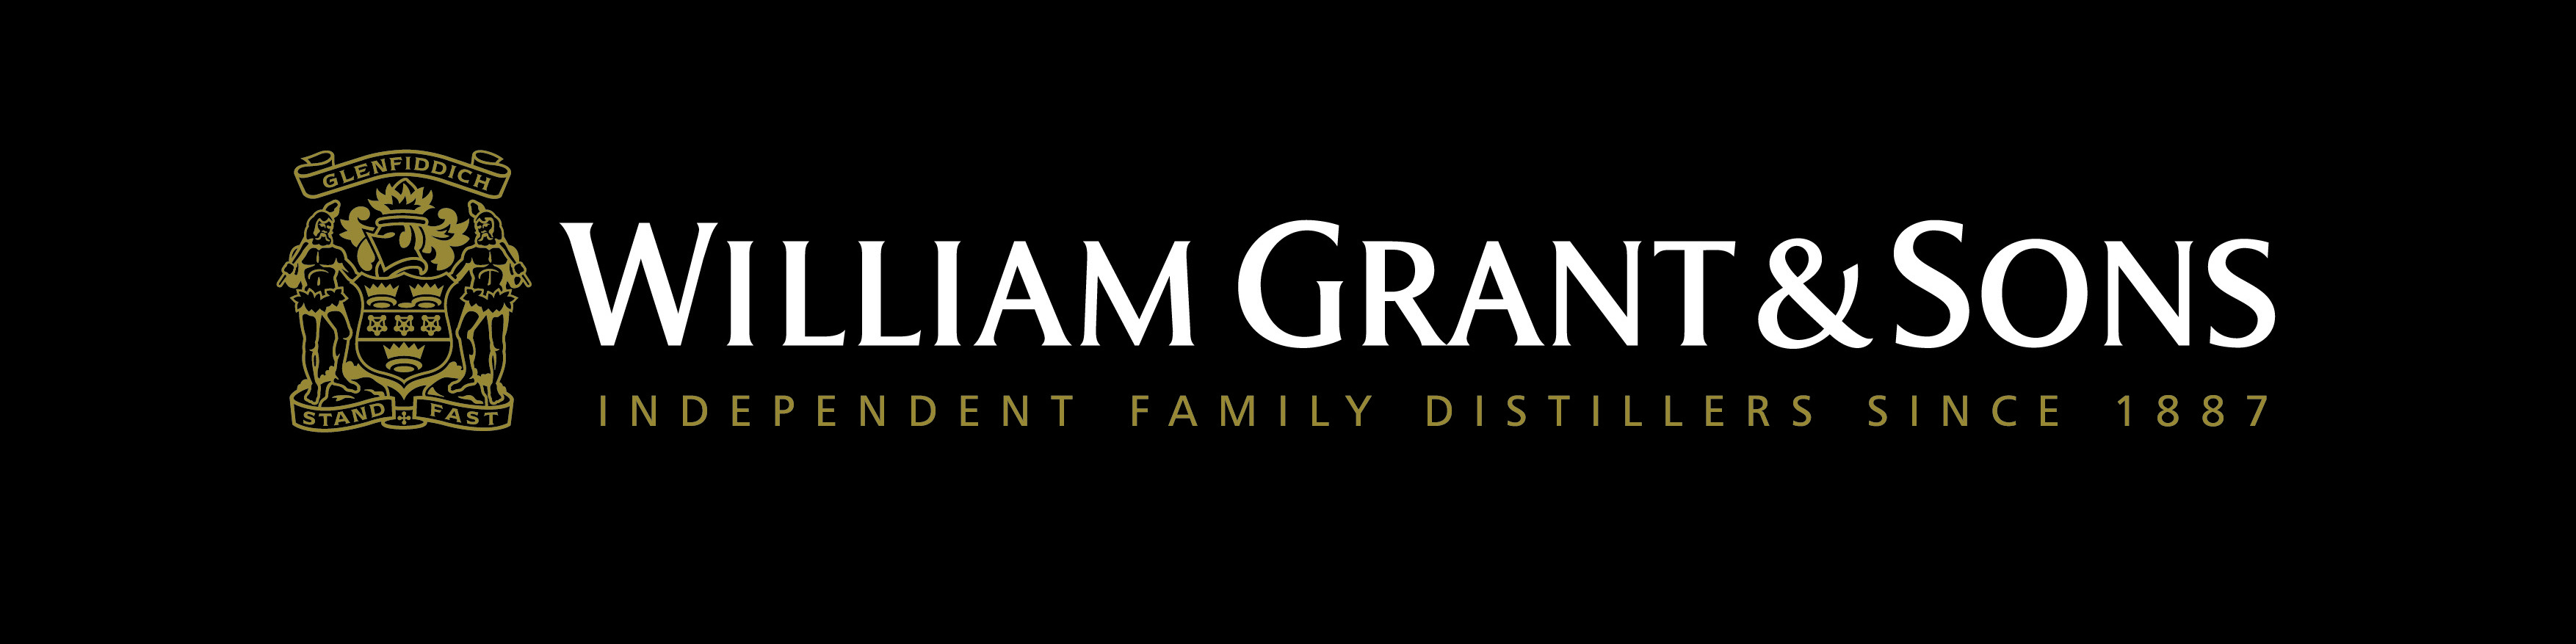 William Grant & Sons, Inc.